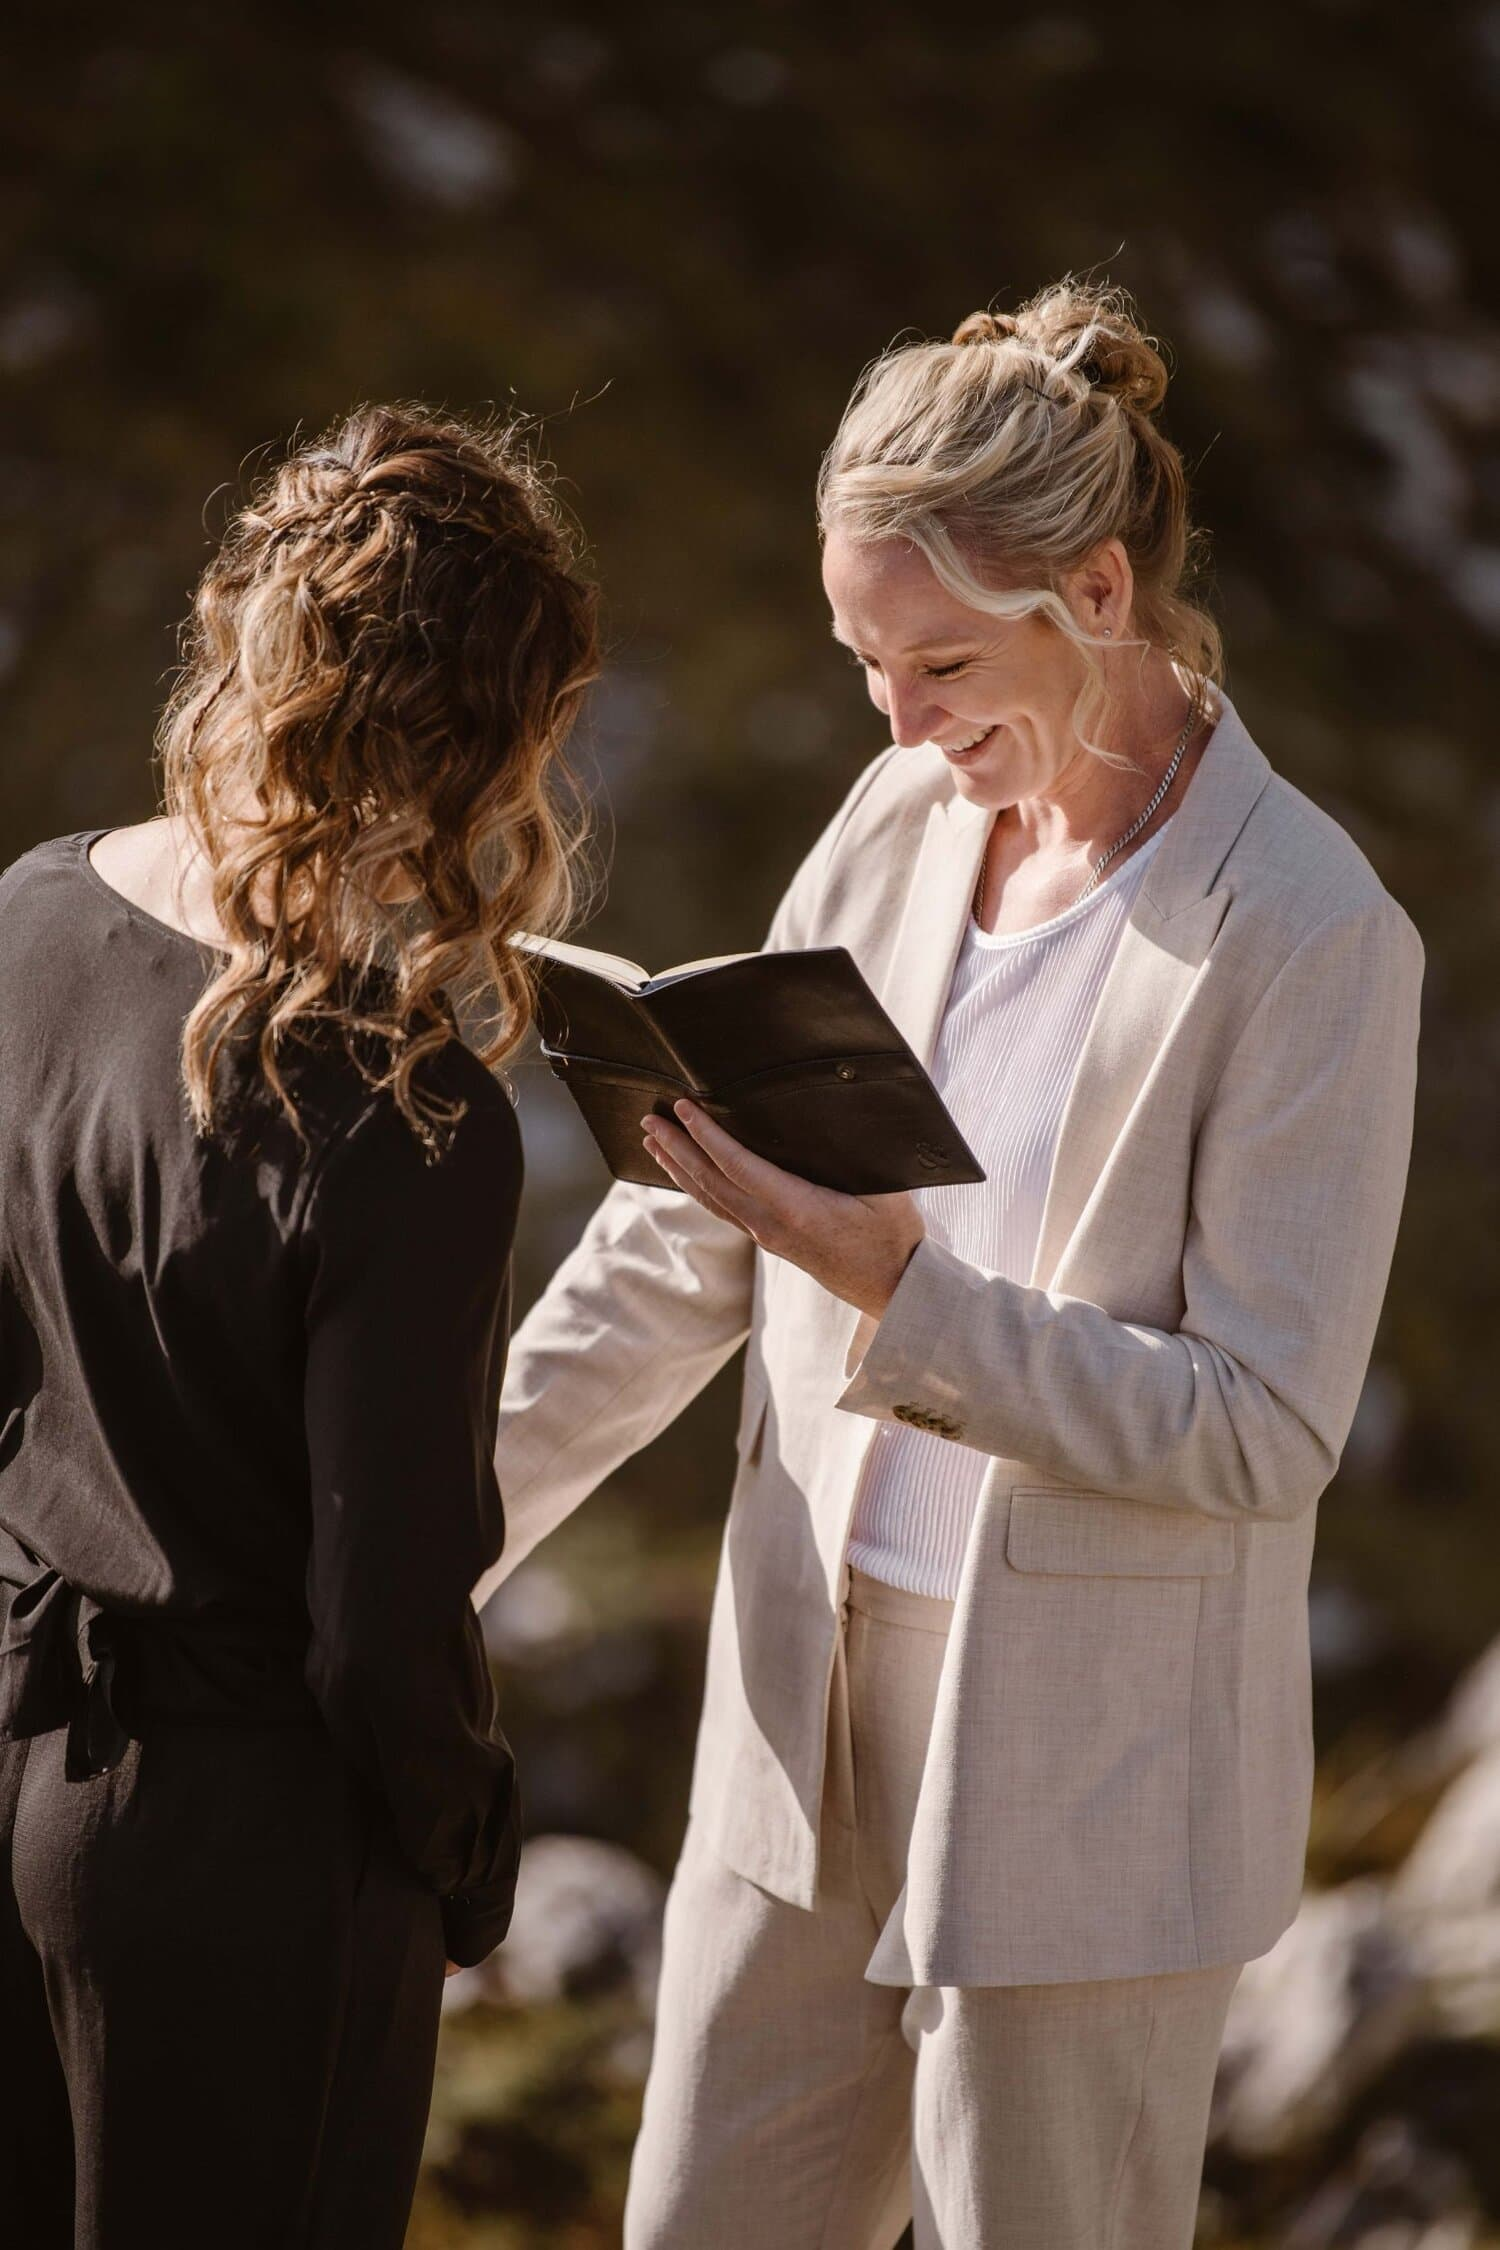 Two brides reading vows during their wedding ceremony in the Italian Dolomites.